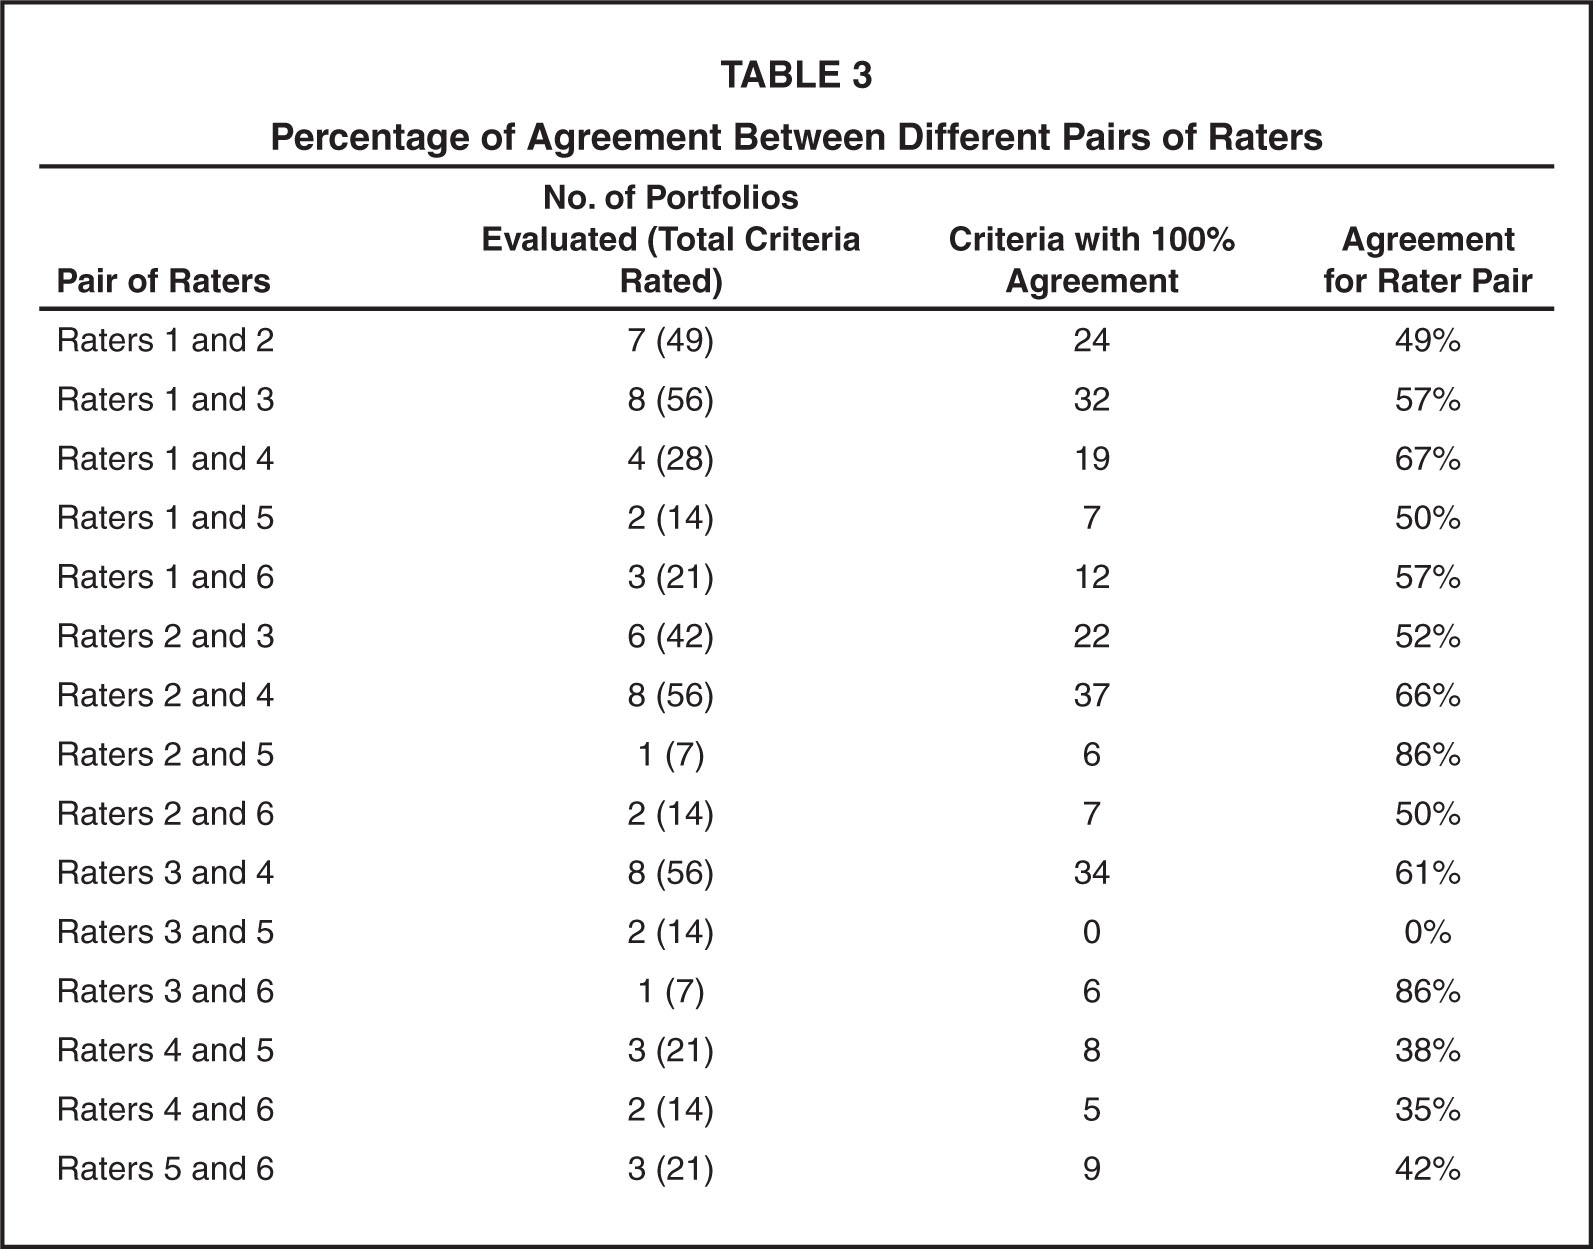 Percentage of Agreement Between Different Pairs of Raters